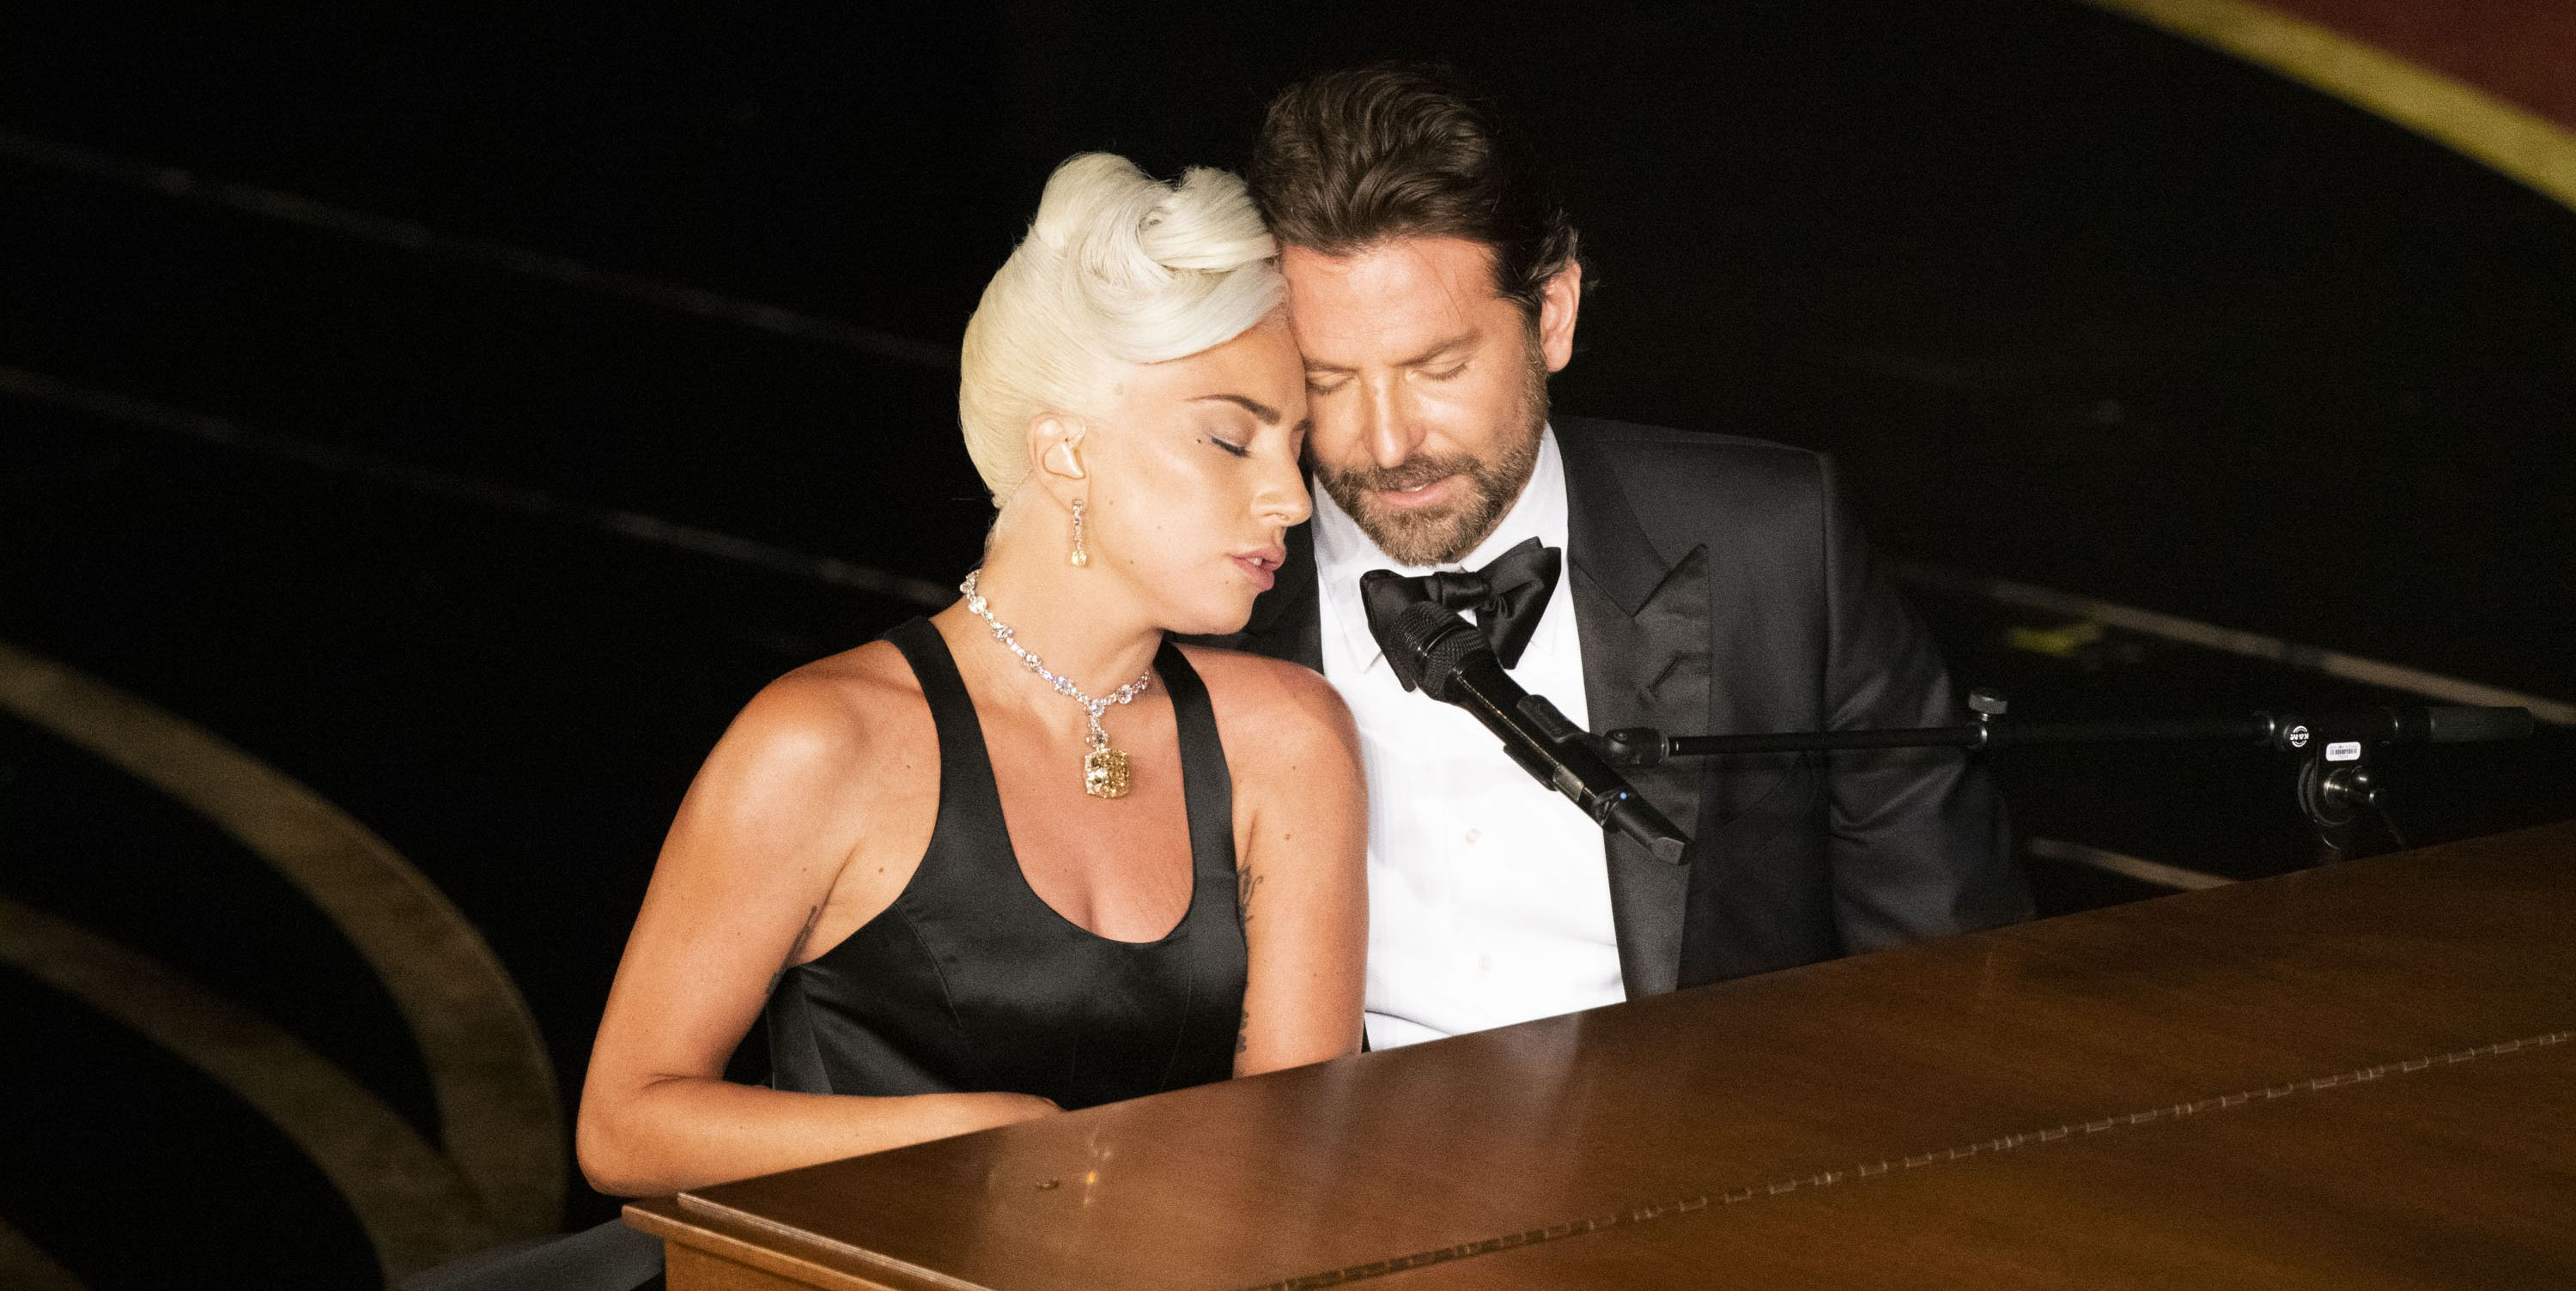 Lady Gaga speaks out about her intimate Oscars performance with Bradley Cooper